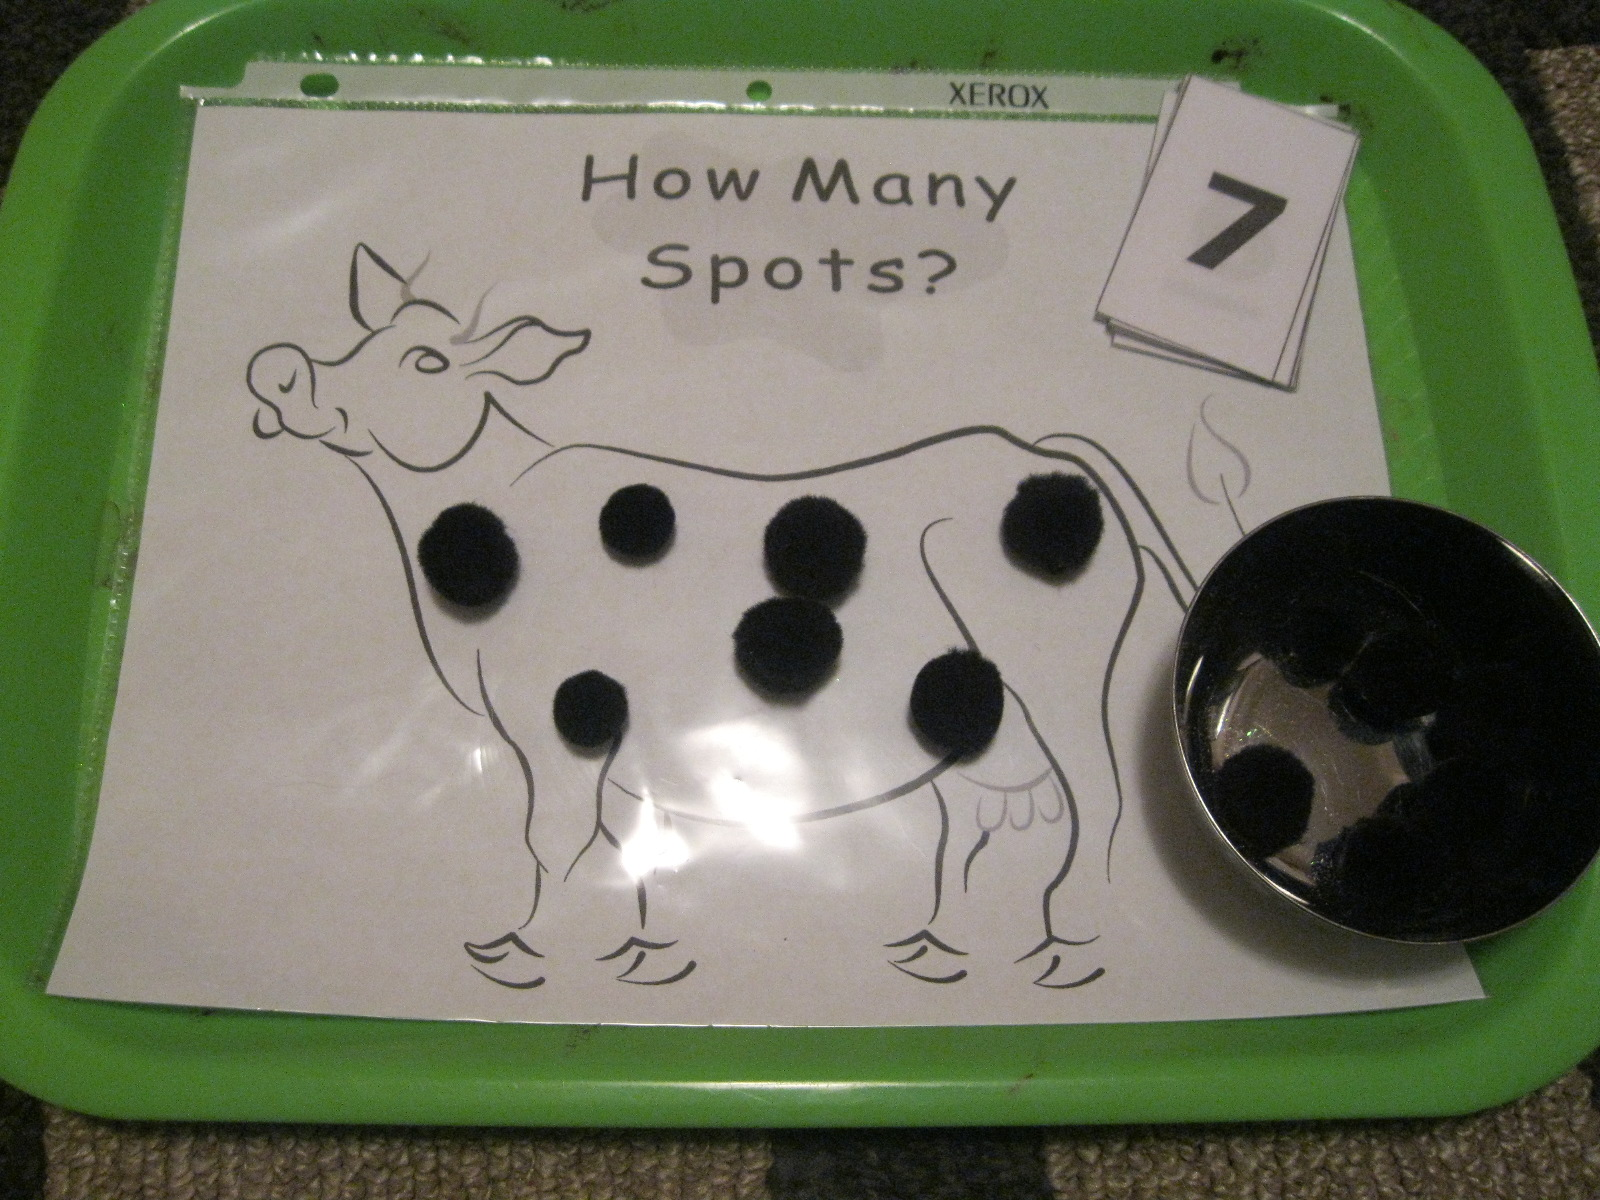 How Many Spots? (Photo from The Preschool Experiment)